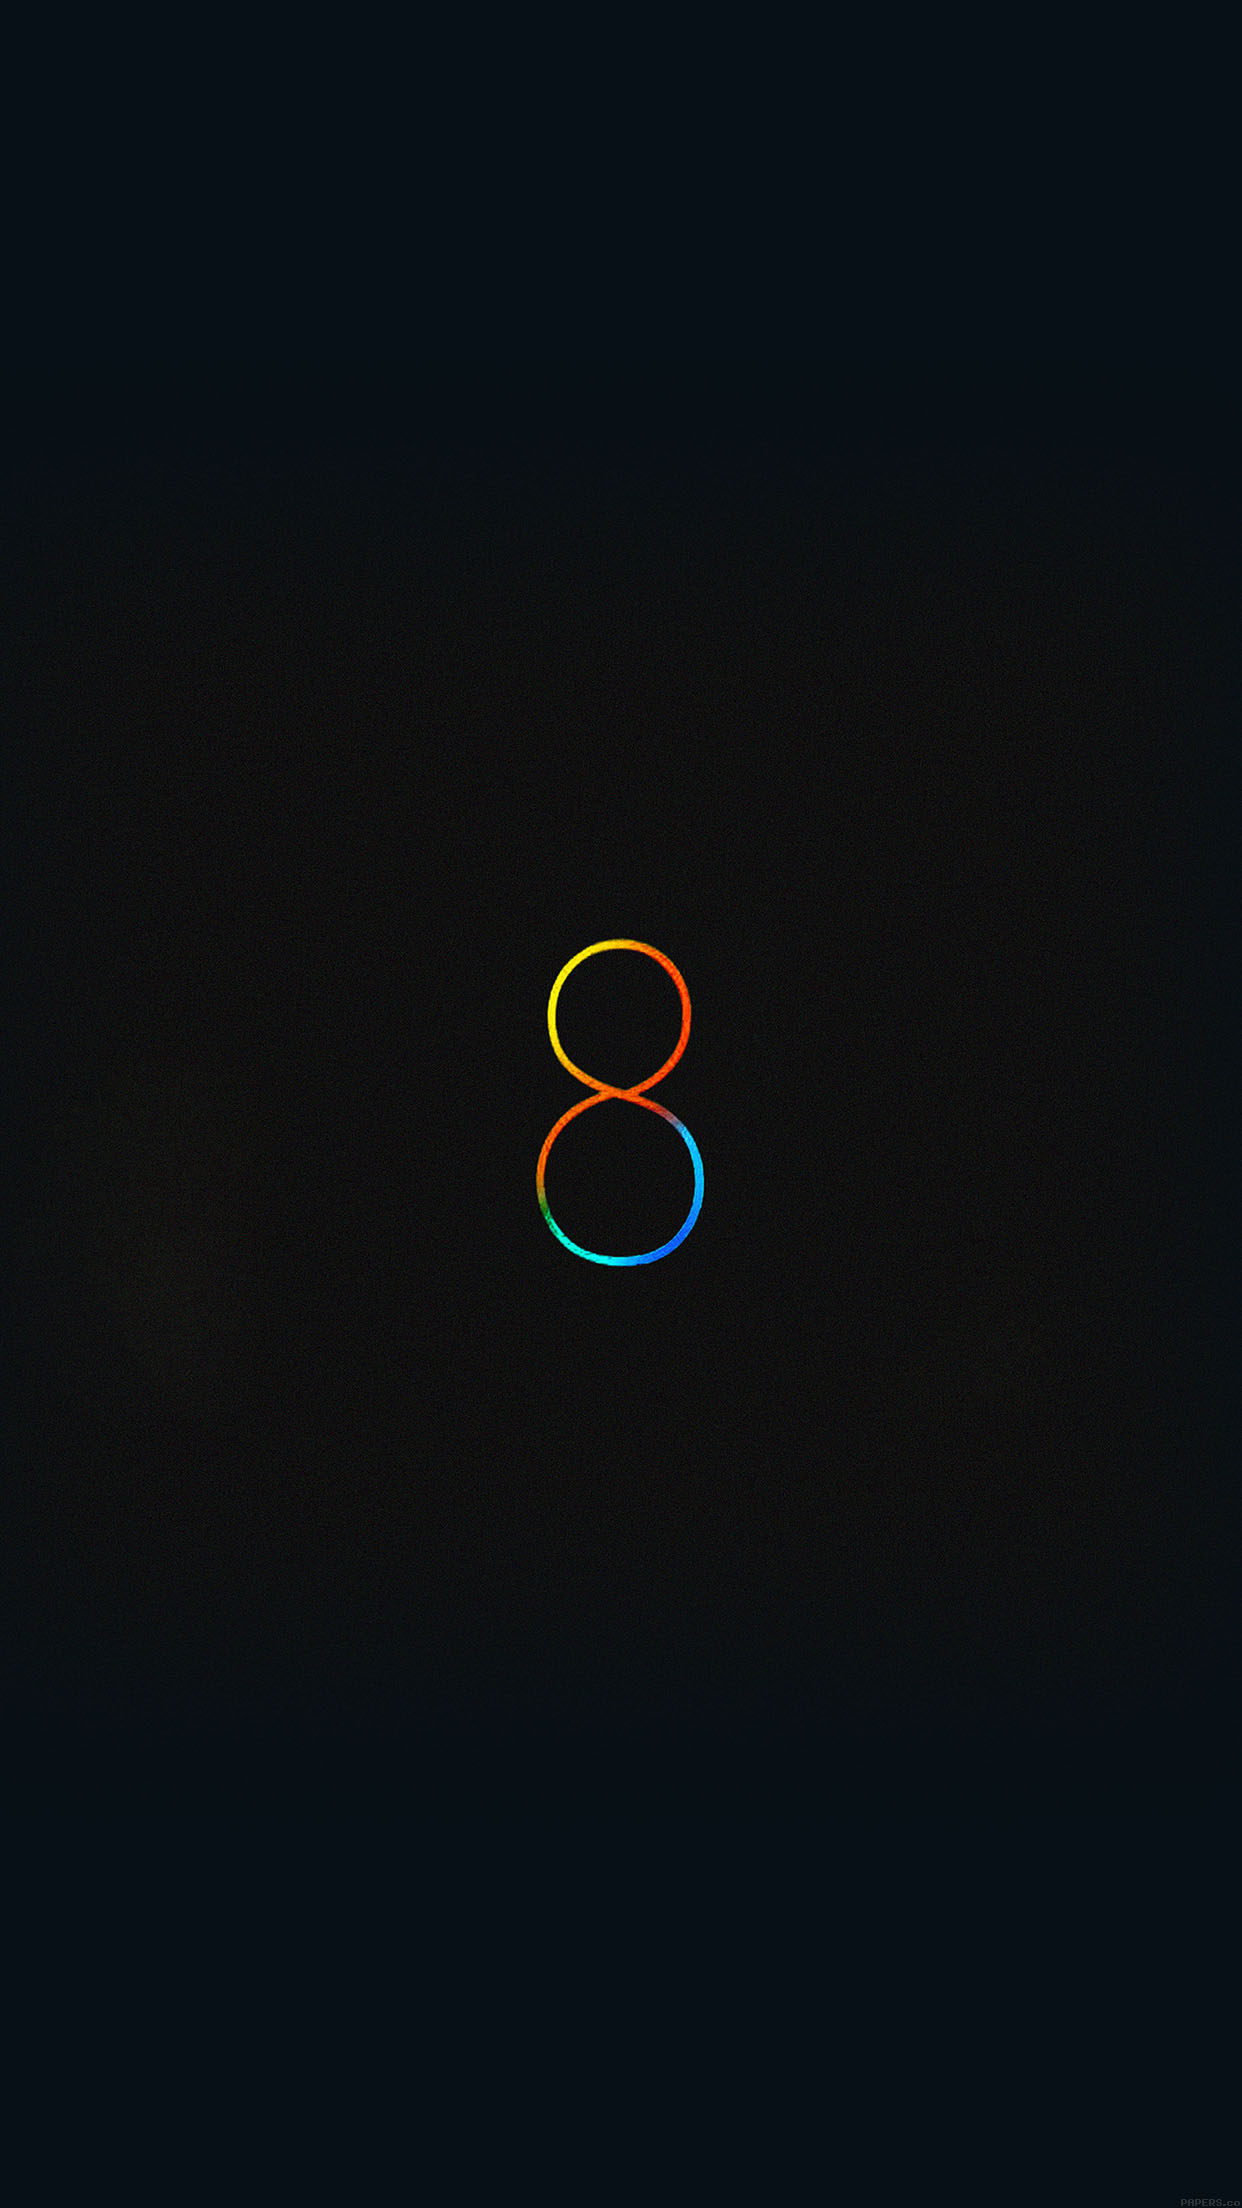 Wallpaper Free Ios 8 Black Apple Android Wallpaper Android